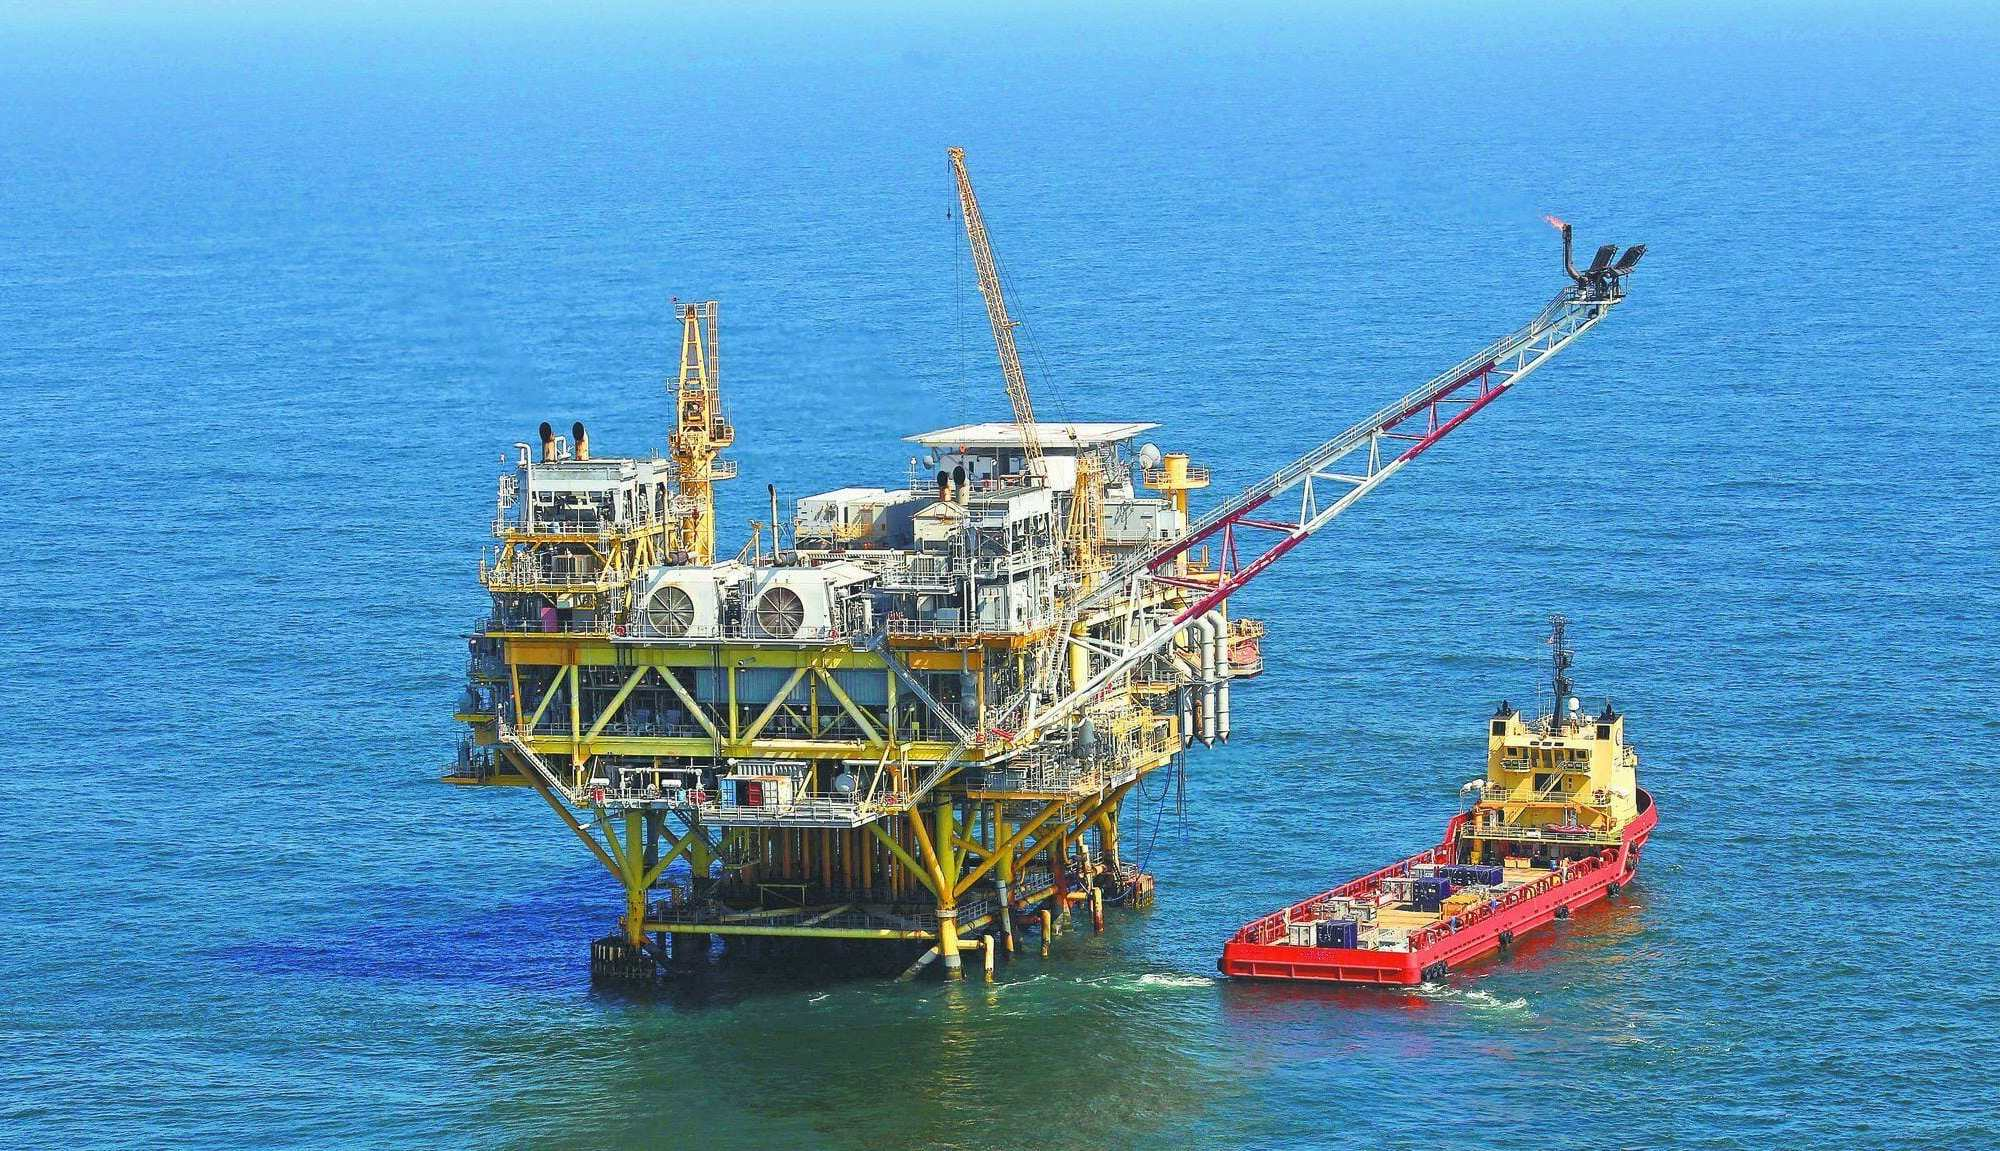 photo: opal drilling platform. Gulf of Mexico oil spill much worse than thought, federal lawyers say